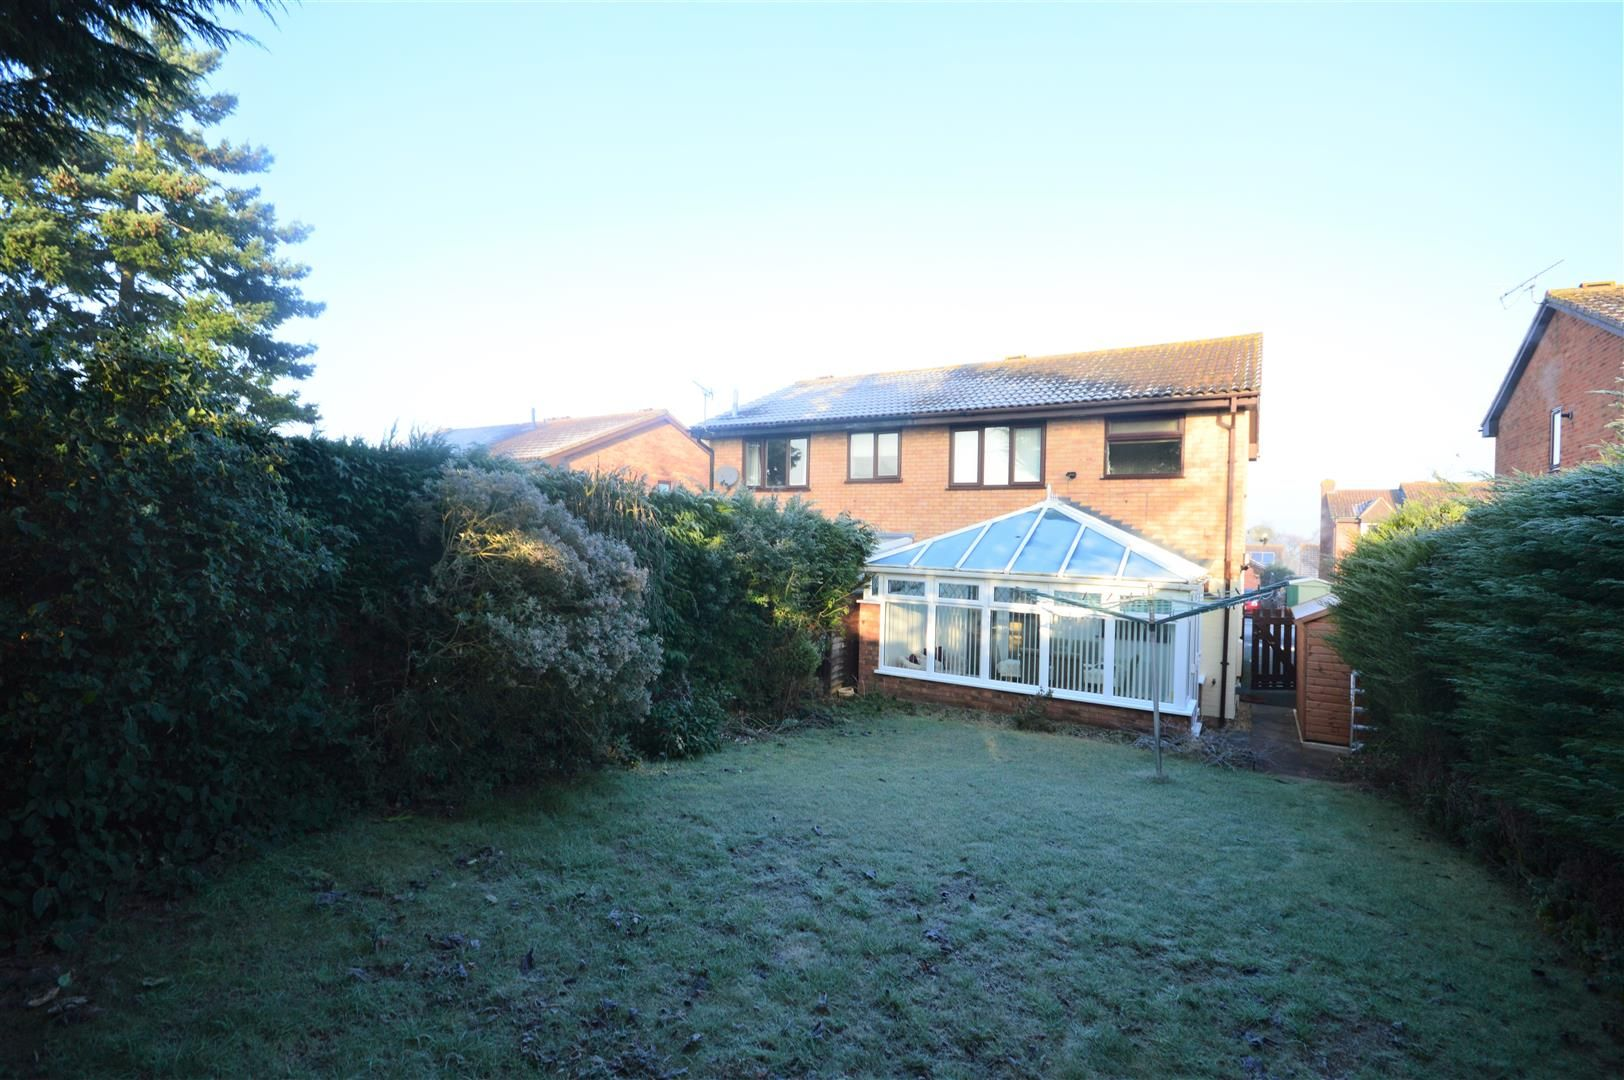 3 bed semi-detached for sale in Leominster 11